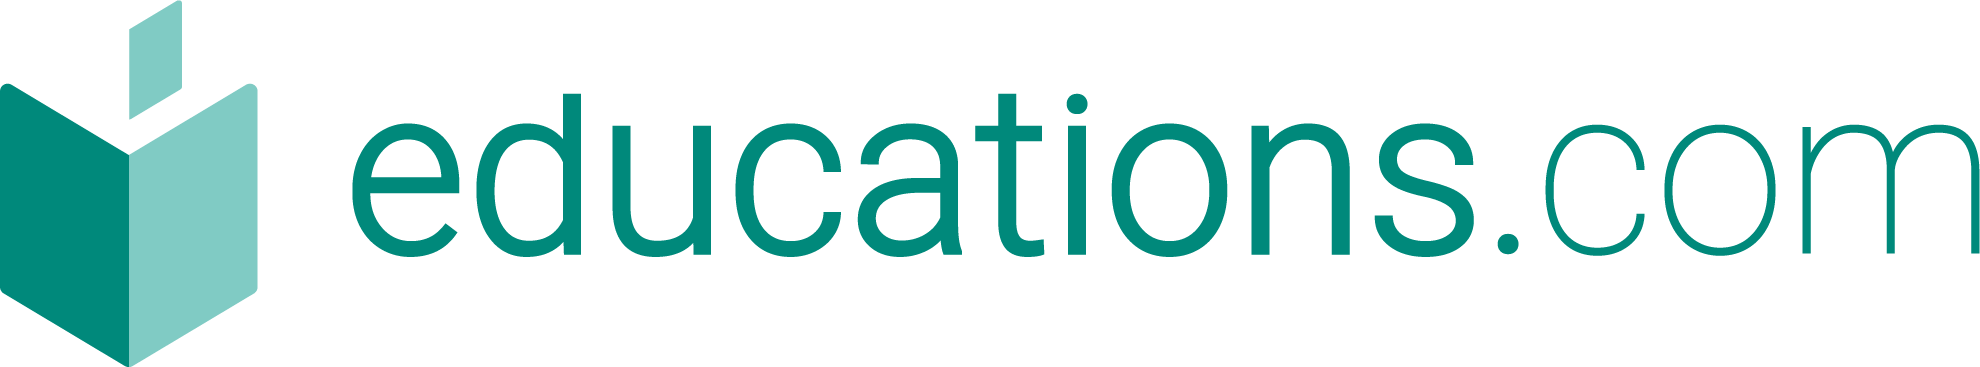 educations.com_logo